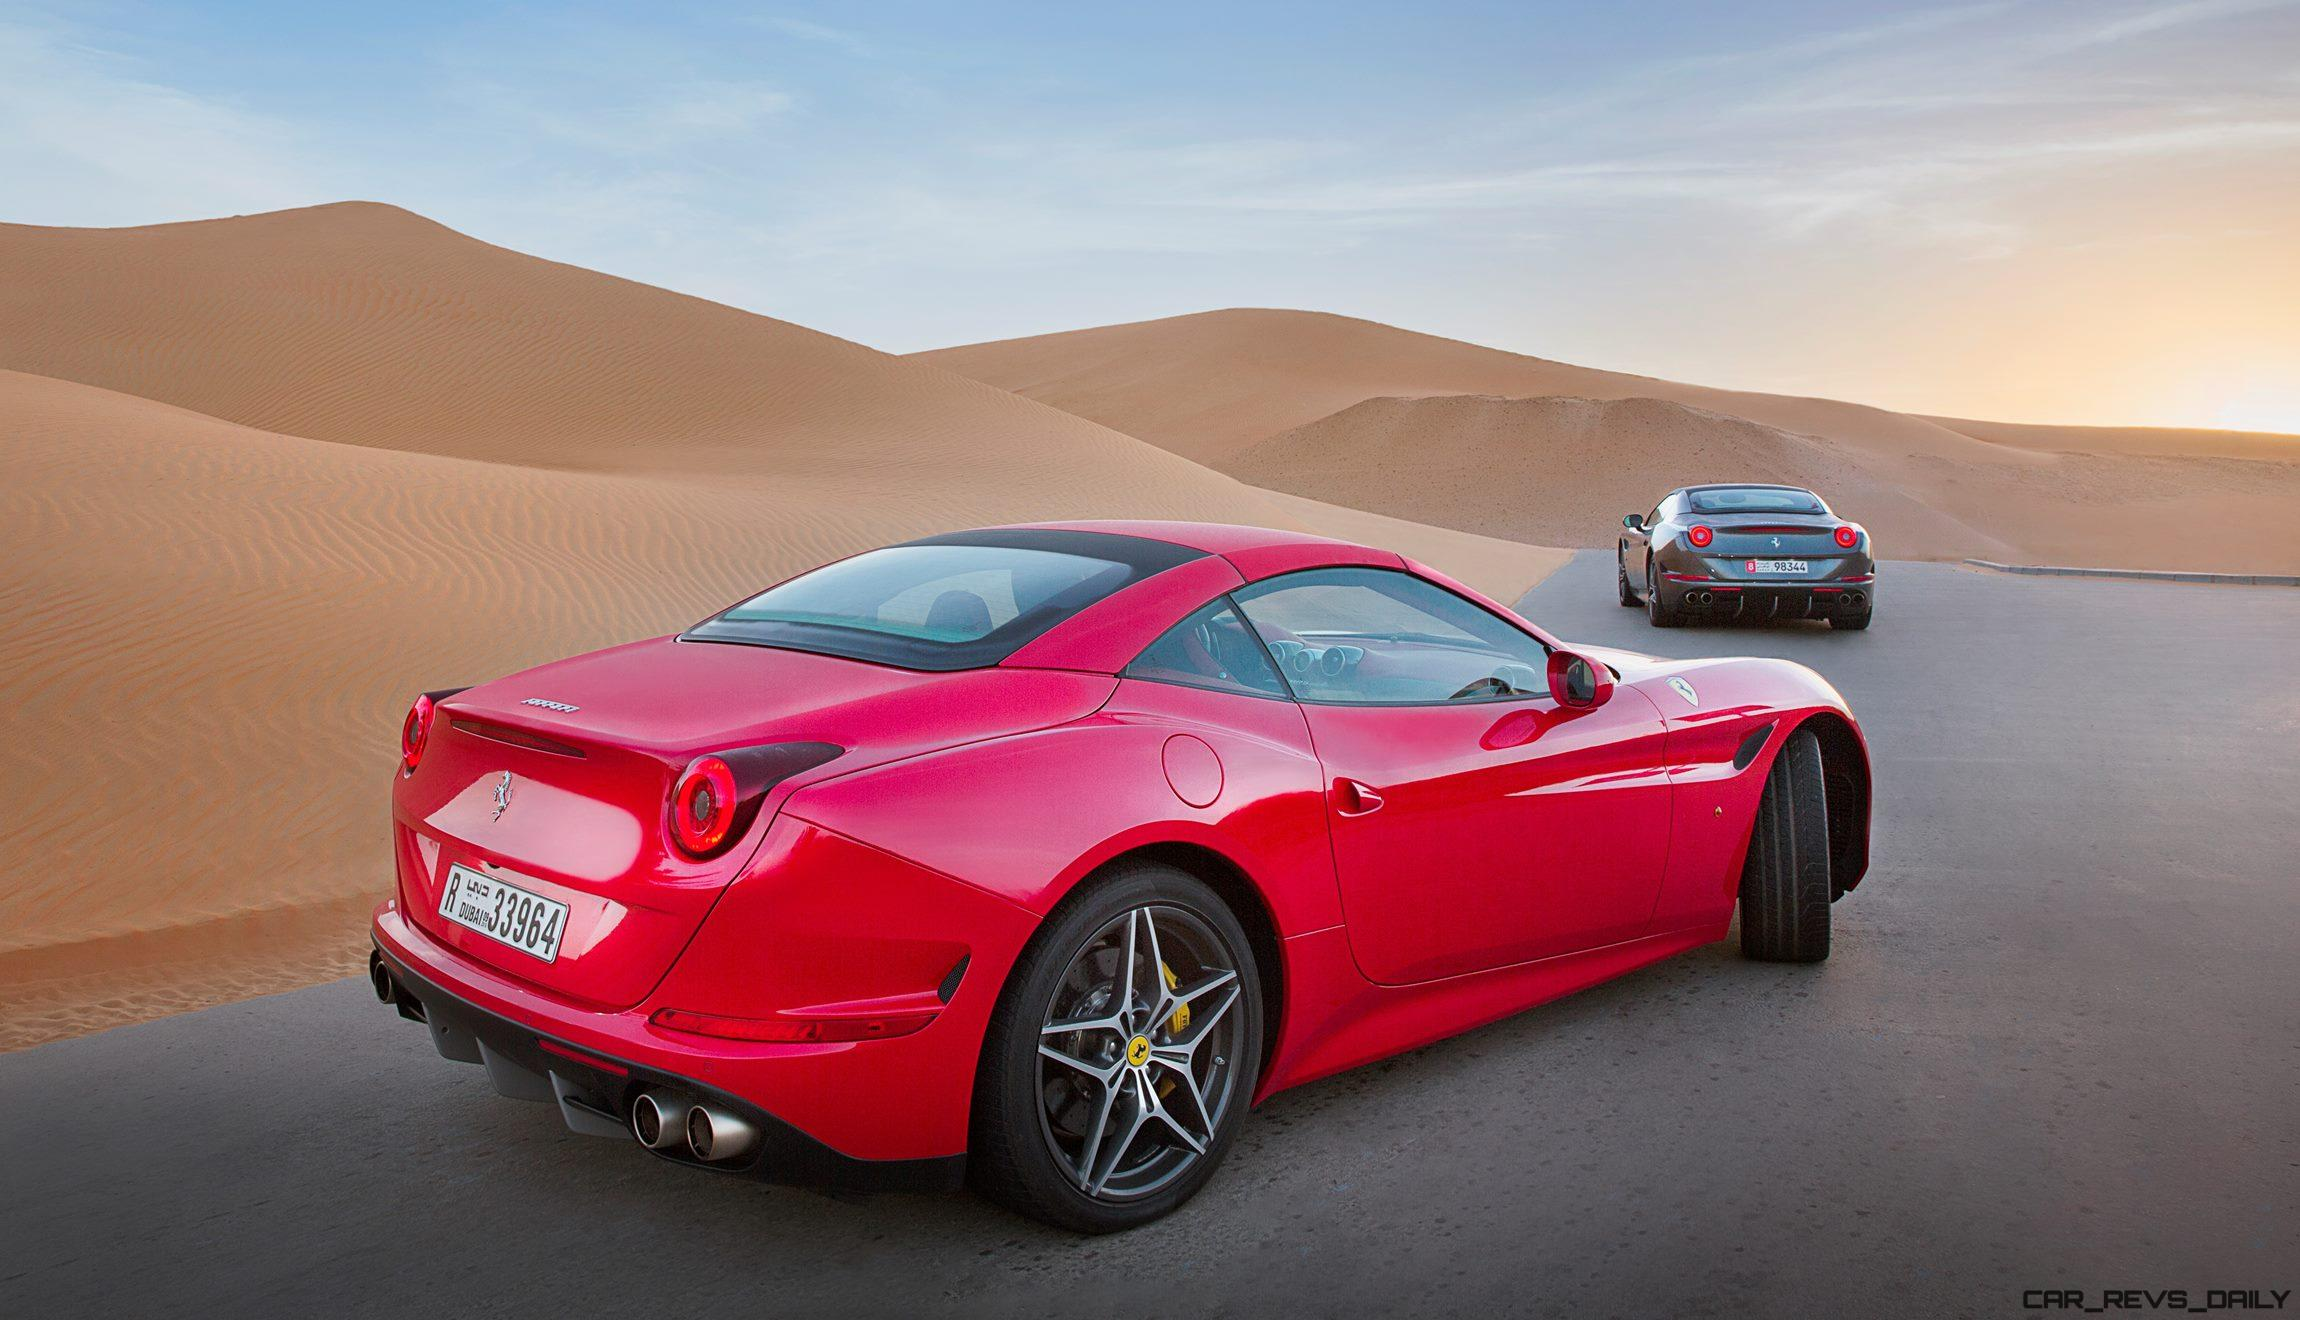 2016 ferrari california t deserto rosso. Black Bedroom Furniture Sets. Home Design Ideas